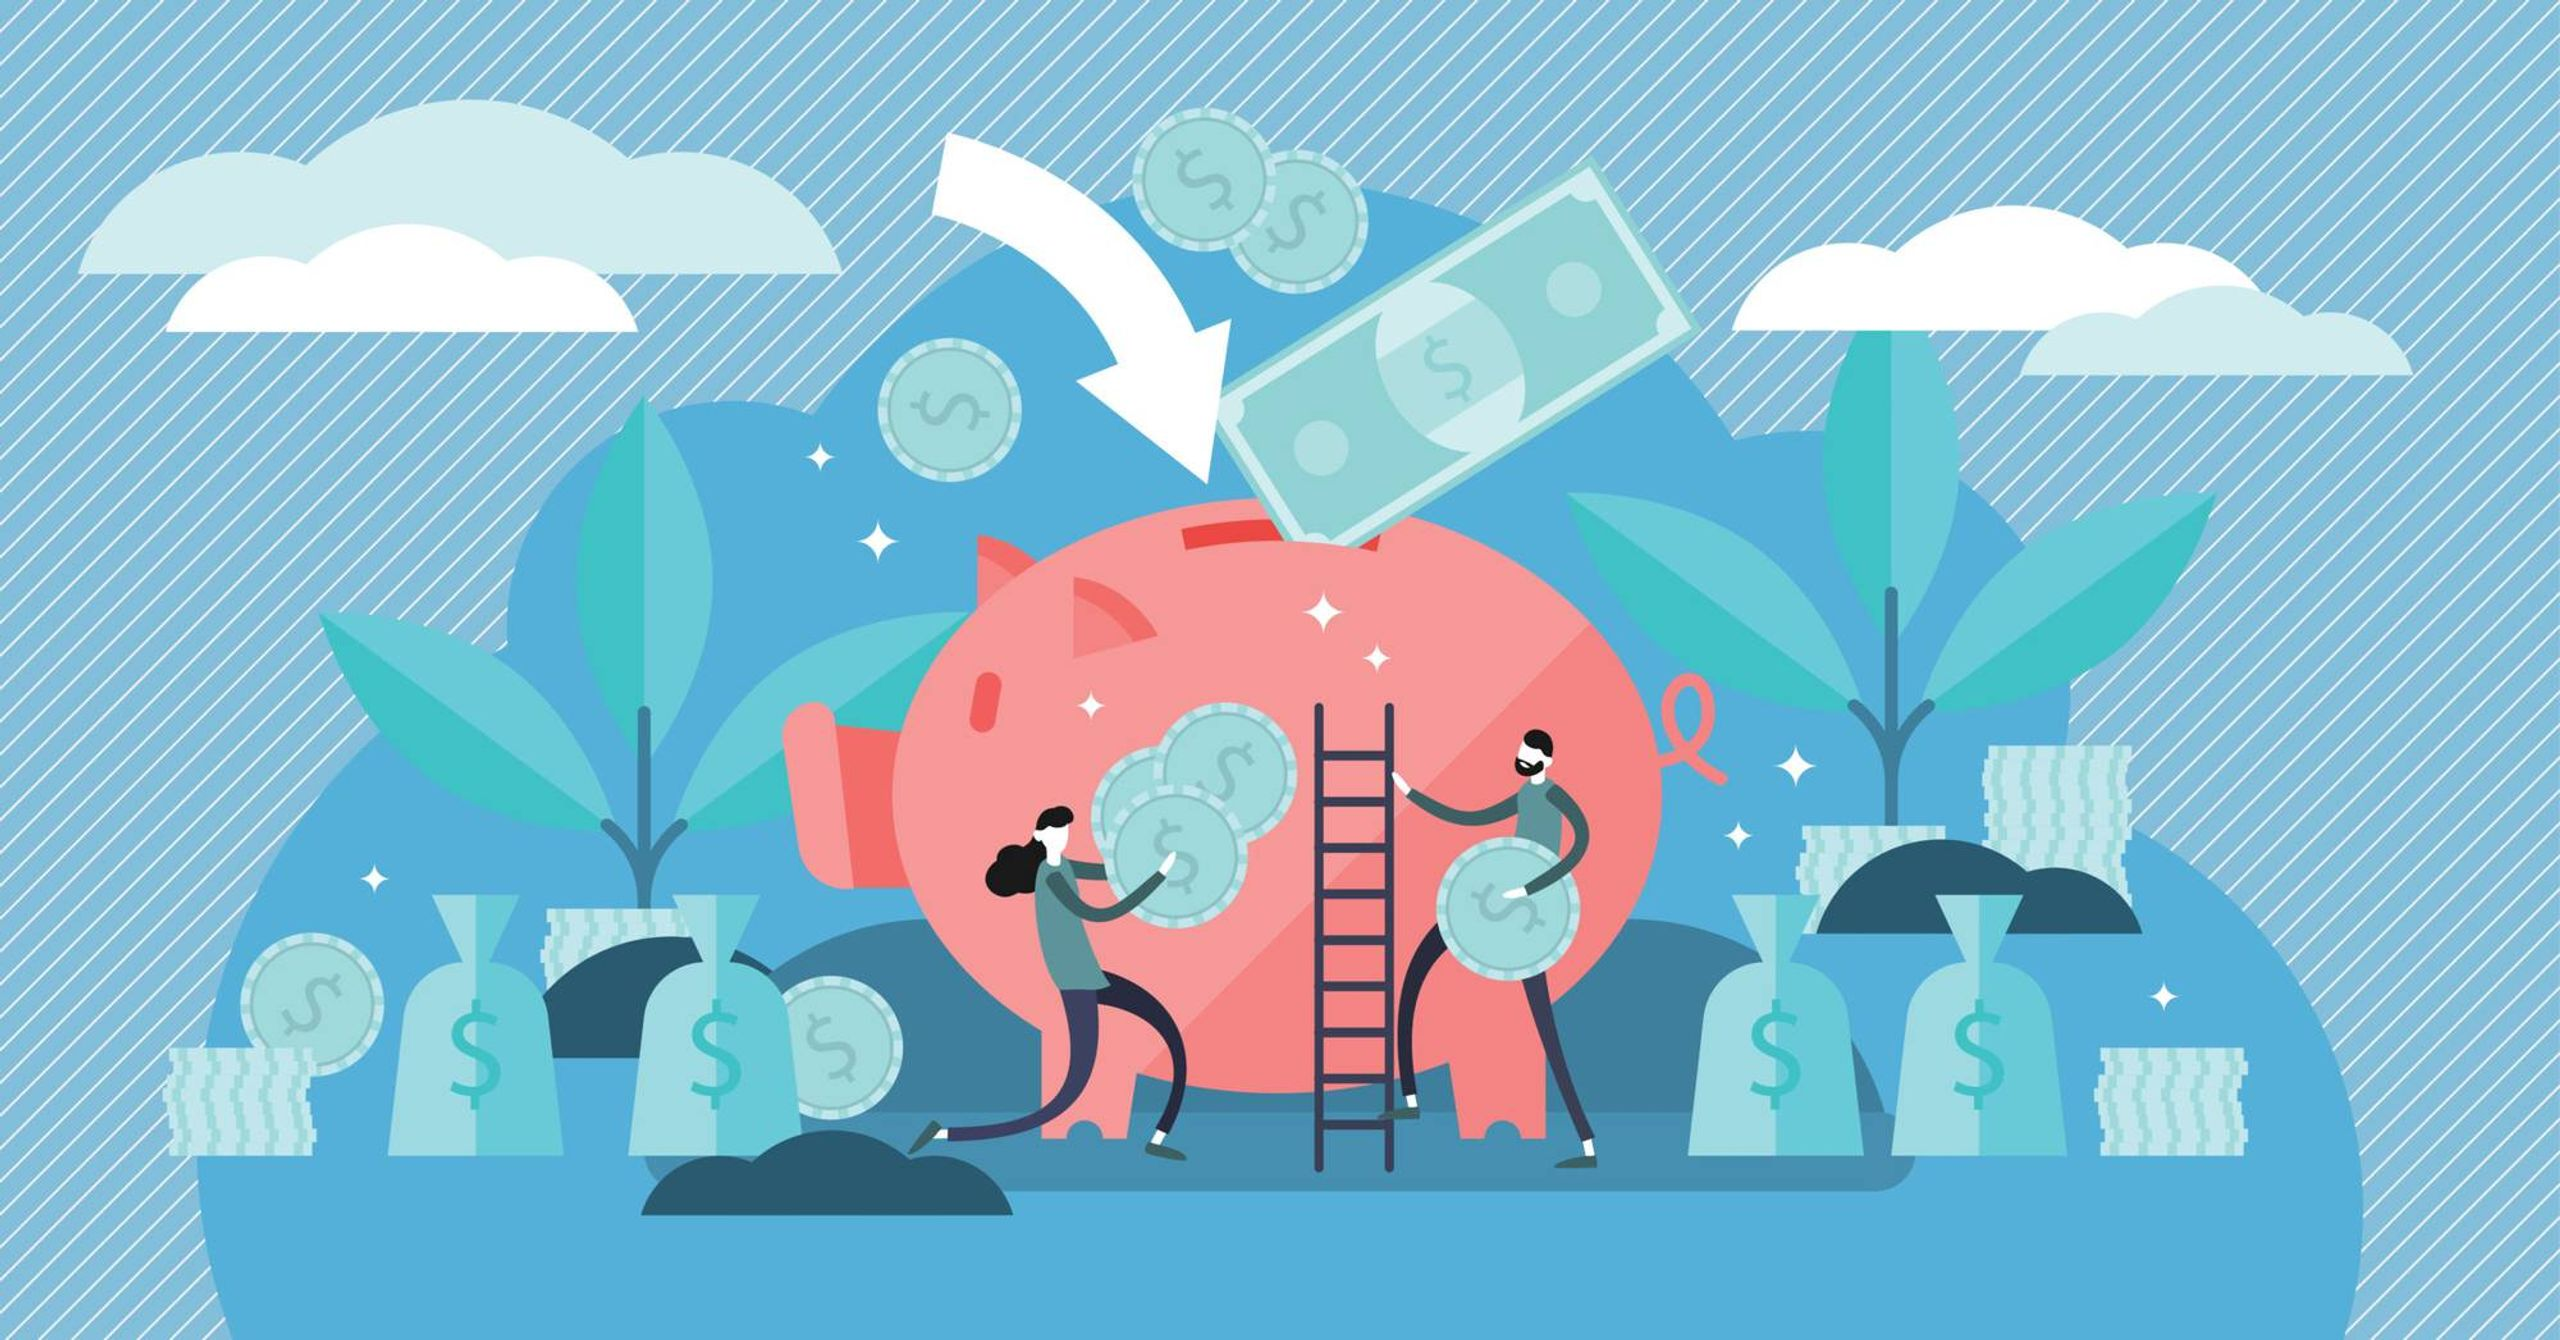 Illustration of young couple inserting coins into large piggy bank, rewire, combine finances